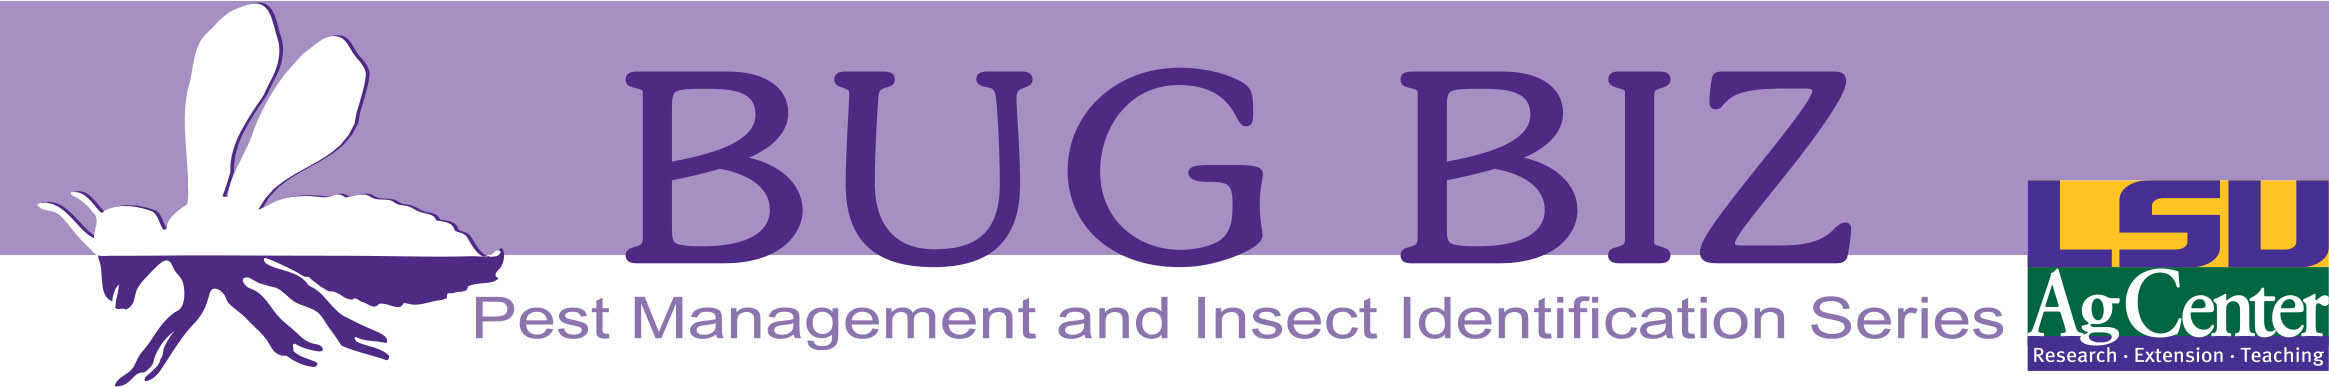 BugBiz header purplejpg